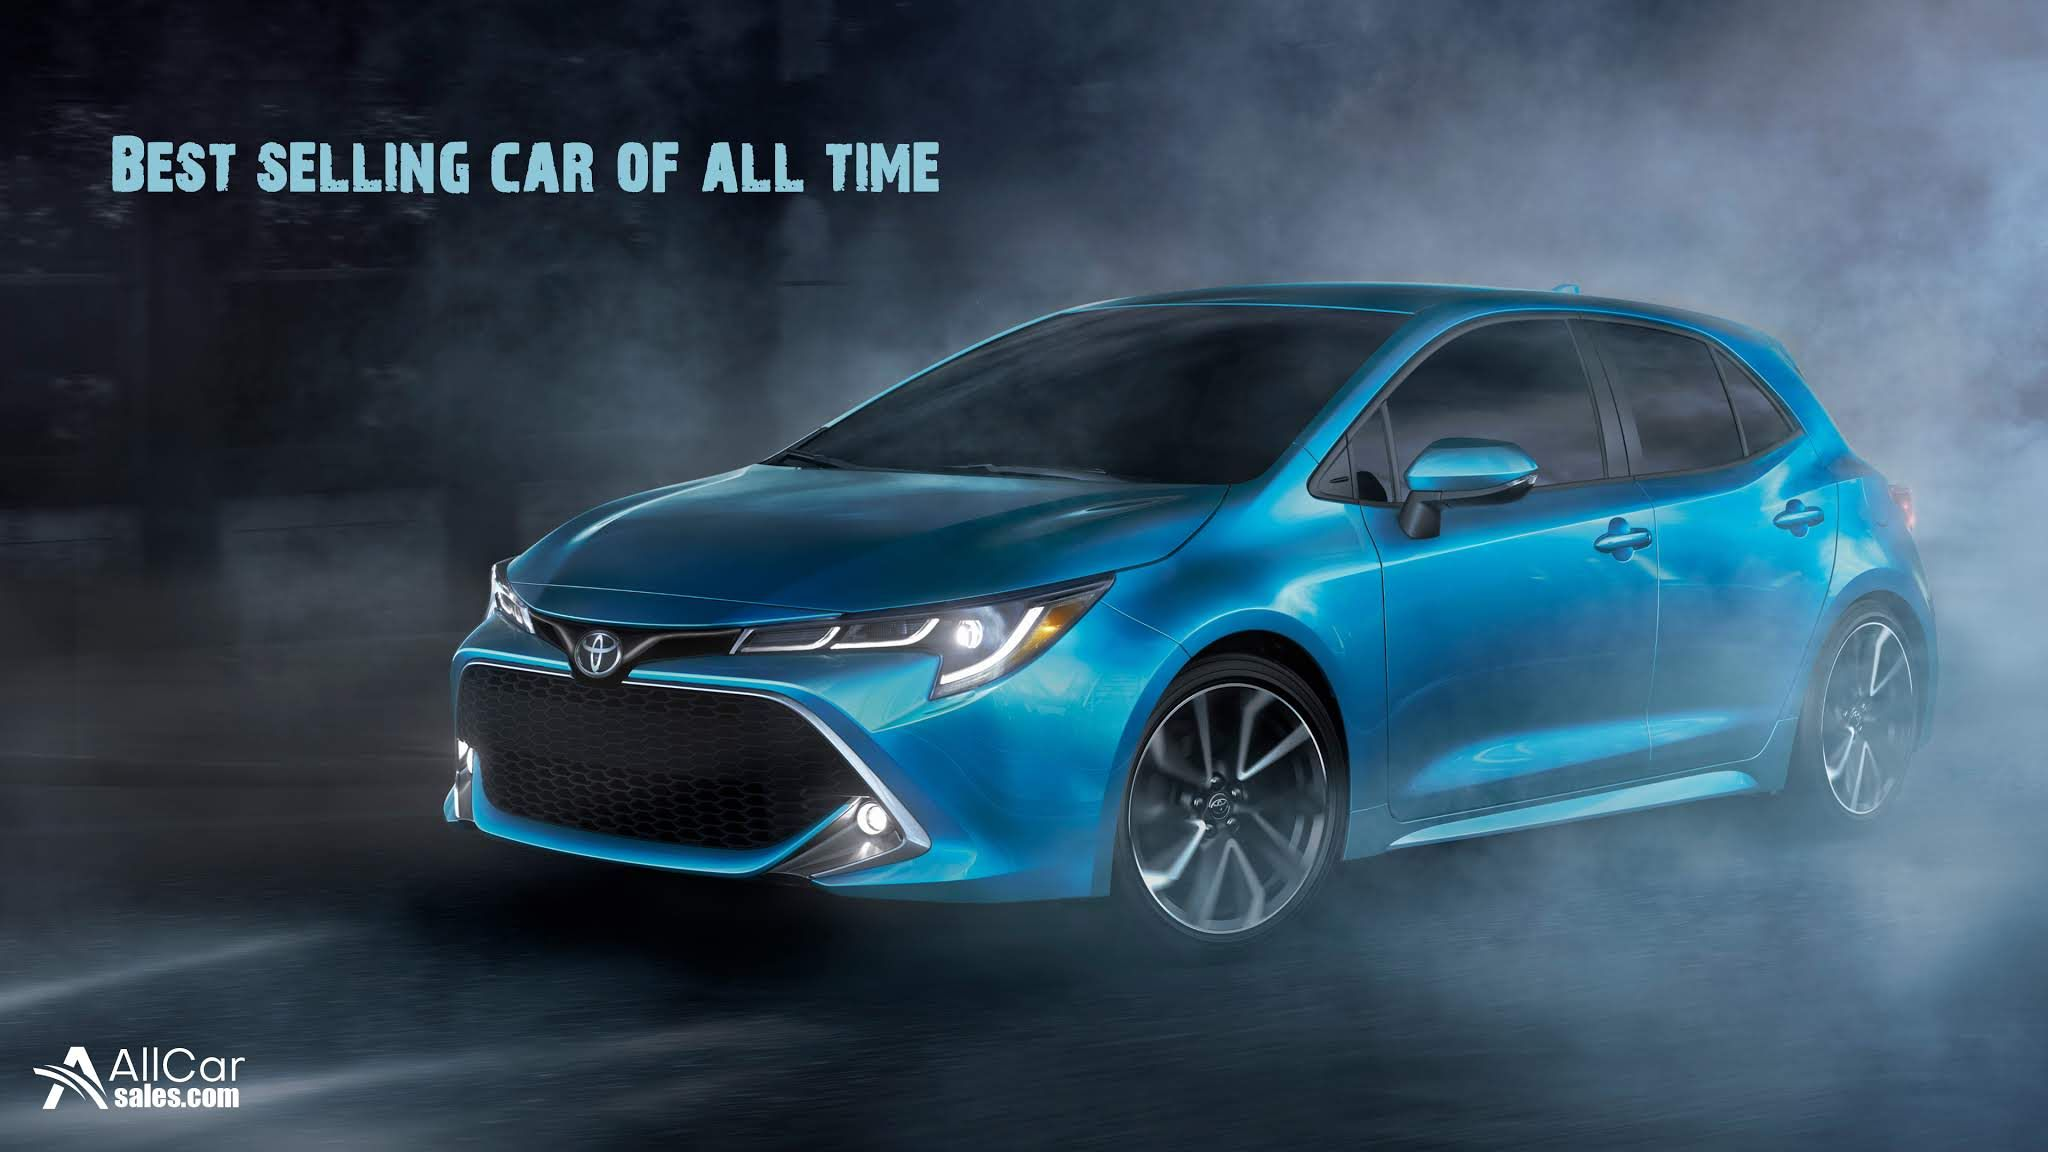 Best Selling Car Of All Time >> Toyota Corolla Ford F Series Volkswagen Golf Is The Best